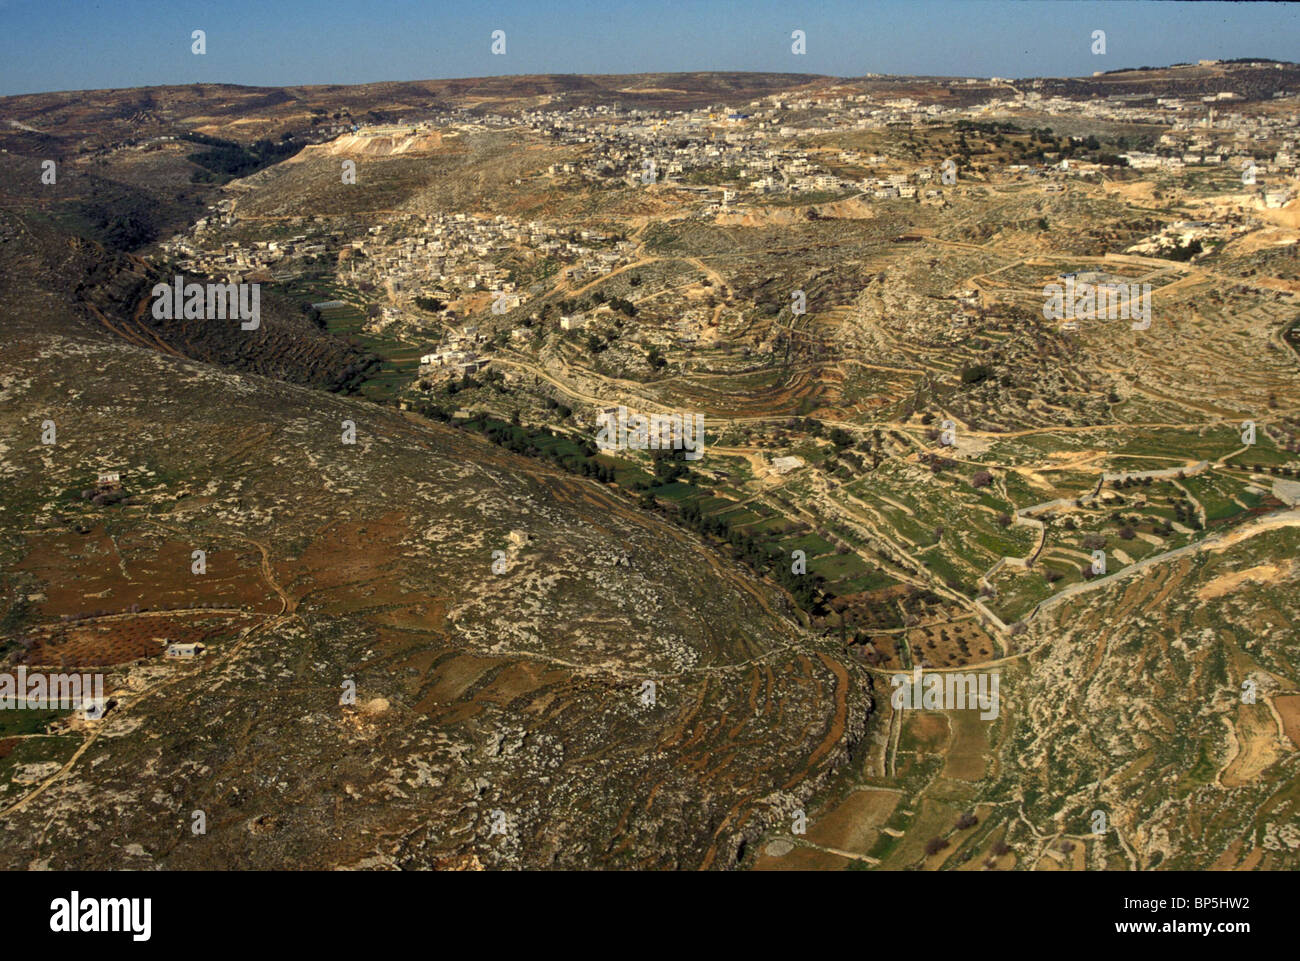 3338. ANCIENT AGRICULTURAL TERRACES IN THE JUDEAN HILLS - Stock Image